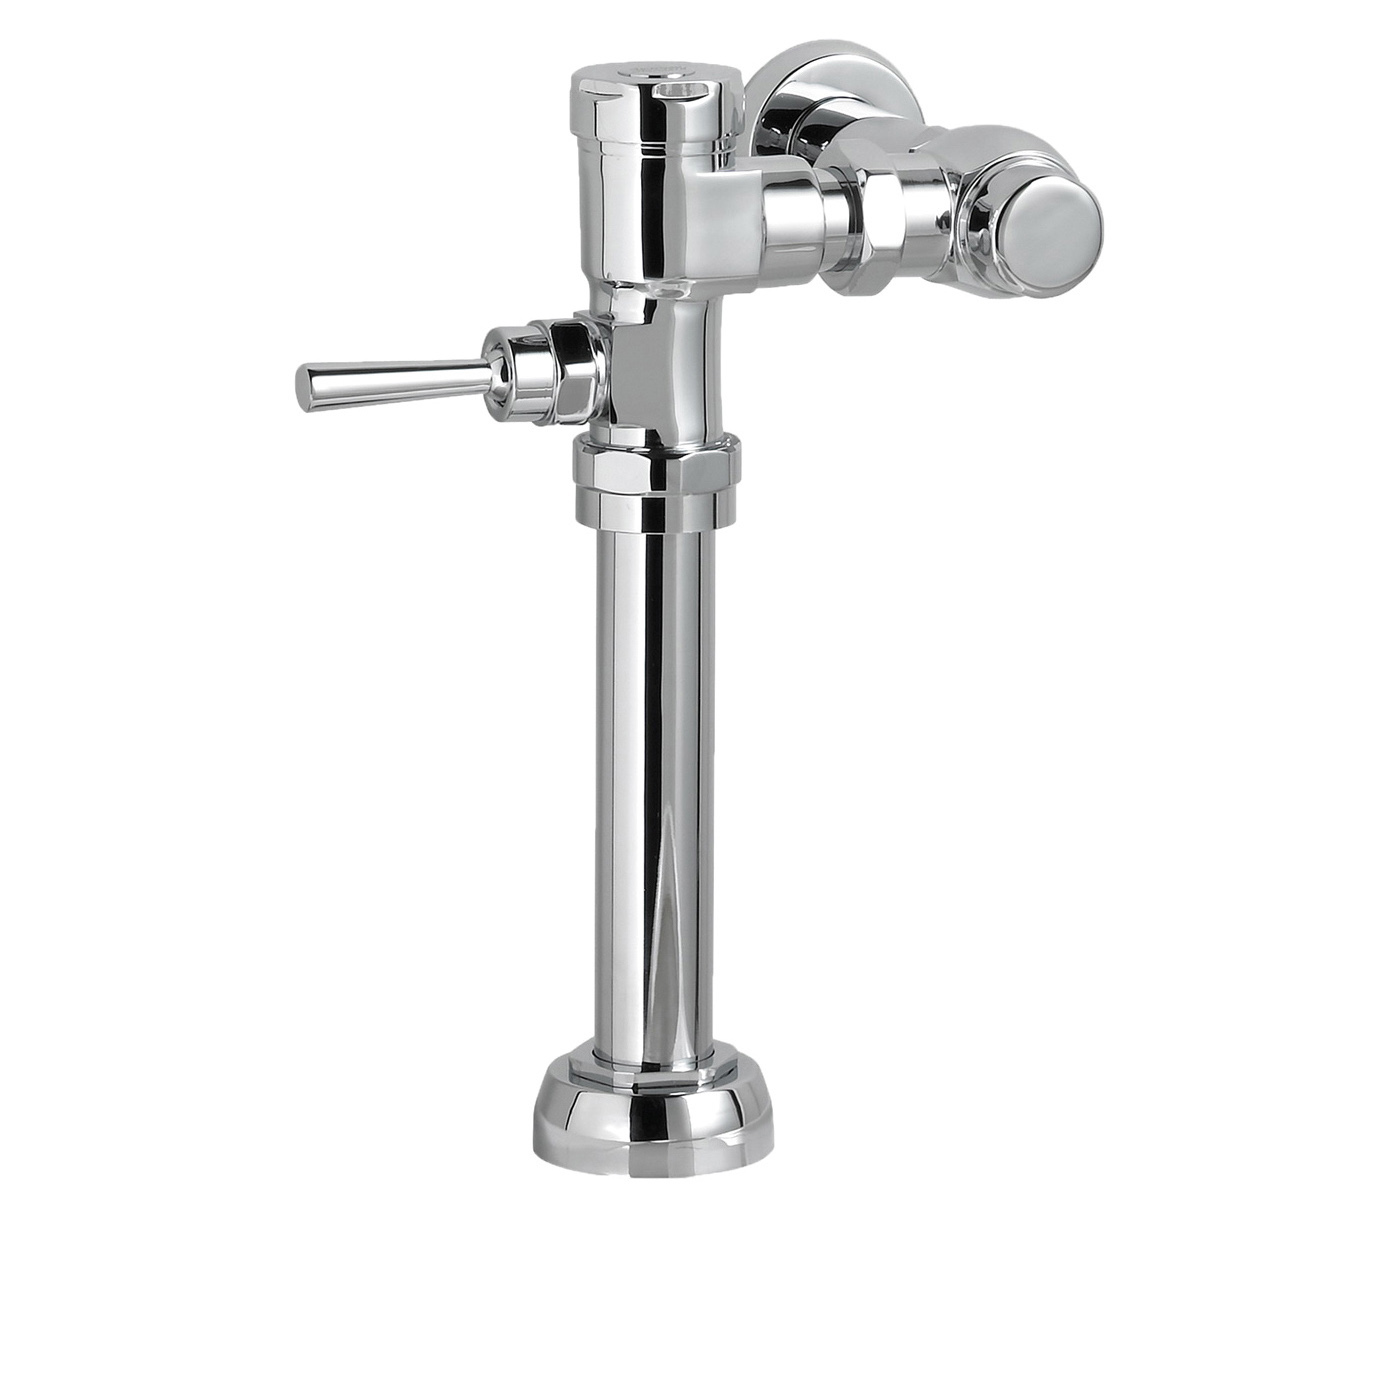 American Standard 6047161.002 Manual Exposed Toilet Flush Valve, 1.6 gpf Flush Rate, 1 in Inlet, 1-1/2 in Spud, 20 to 80 psi Pressure, Polished Chrome, Import